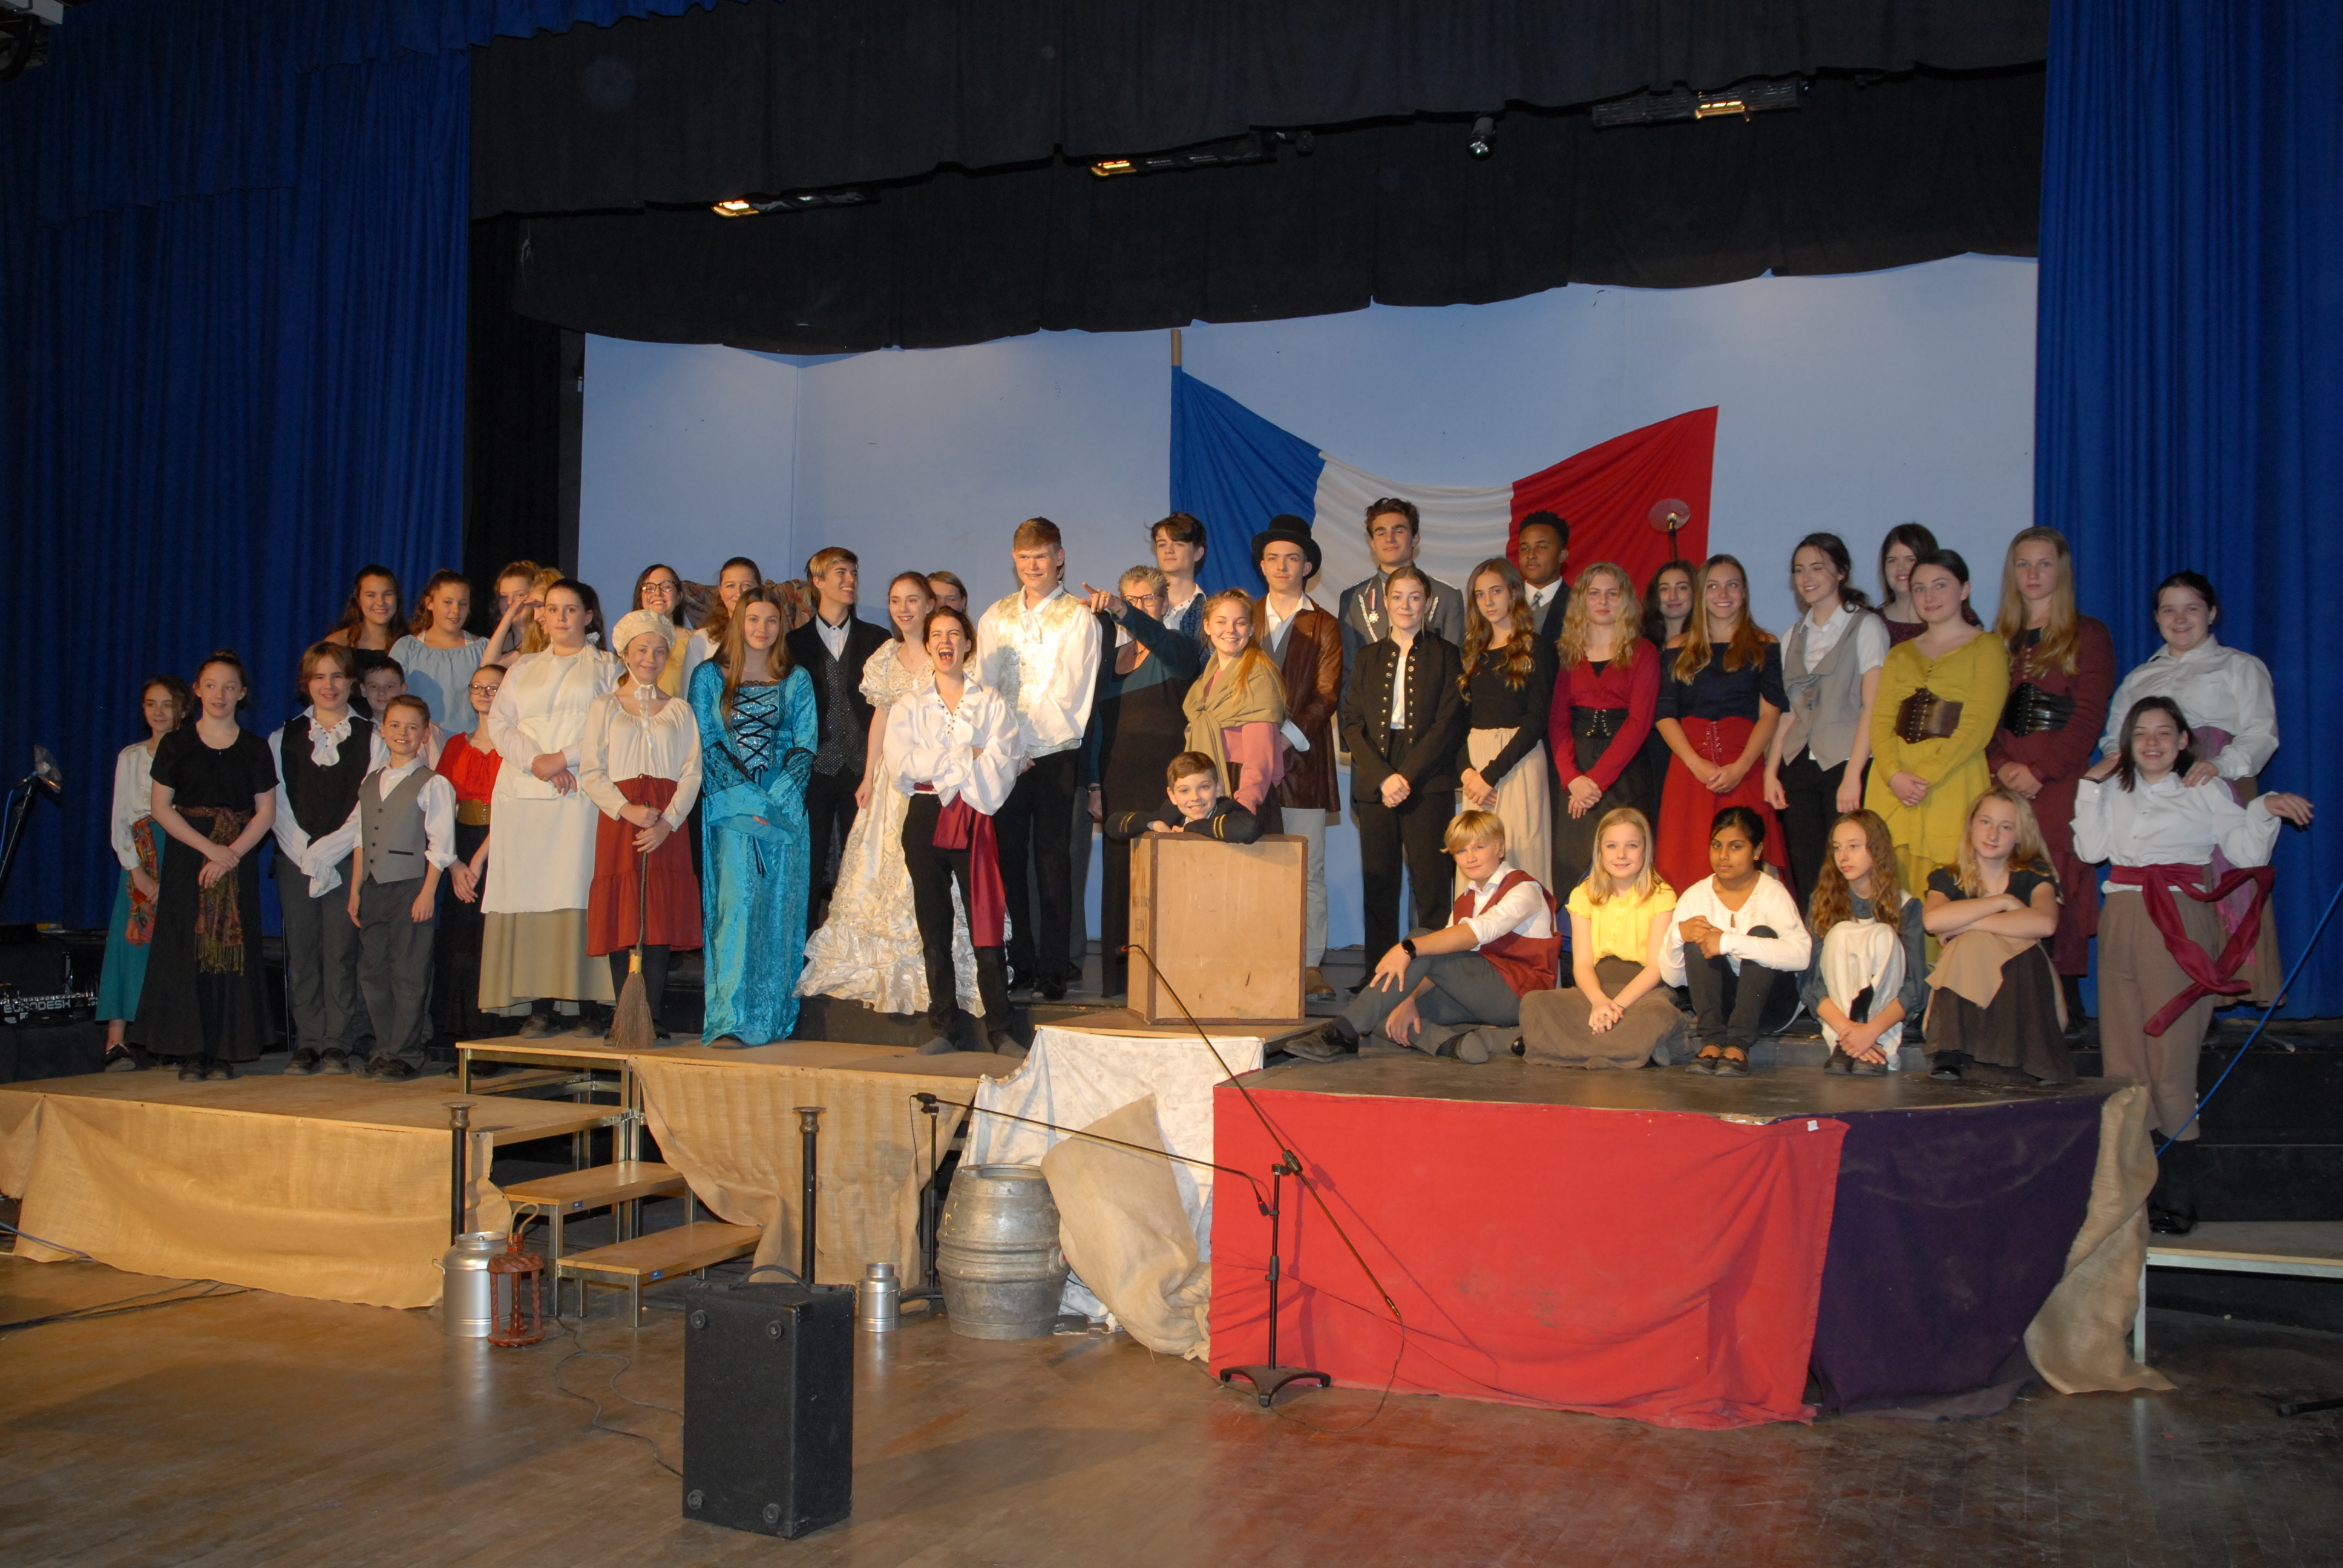 Les Misérables Production Back by Popular Demand